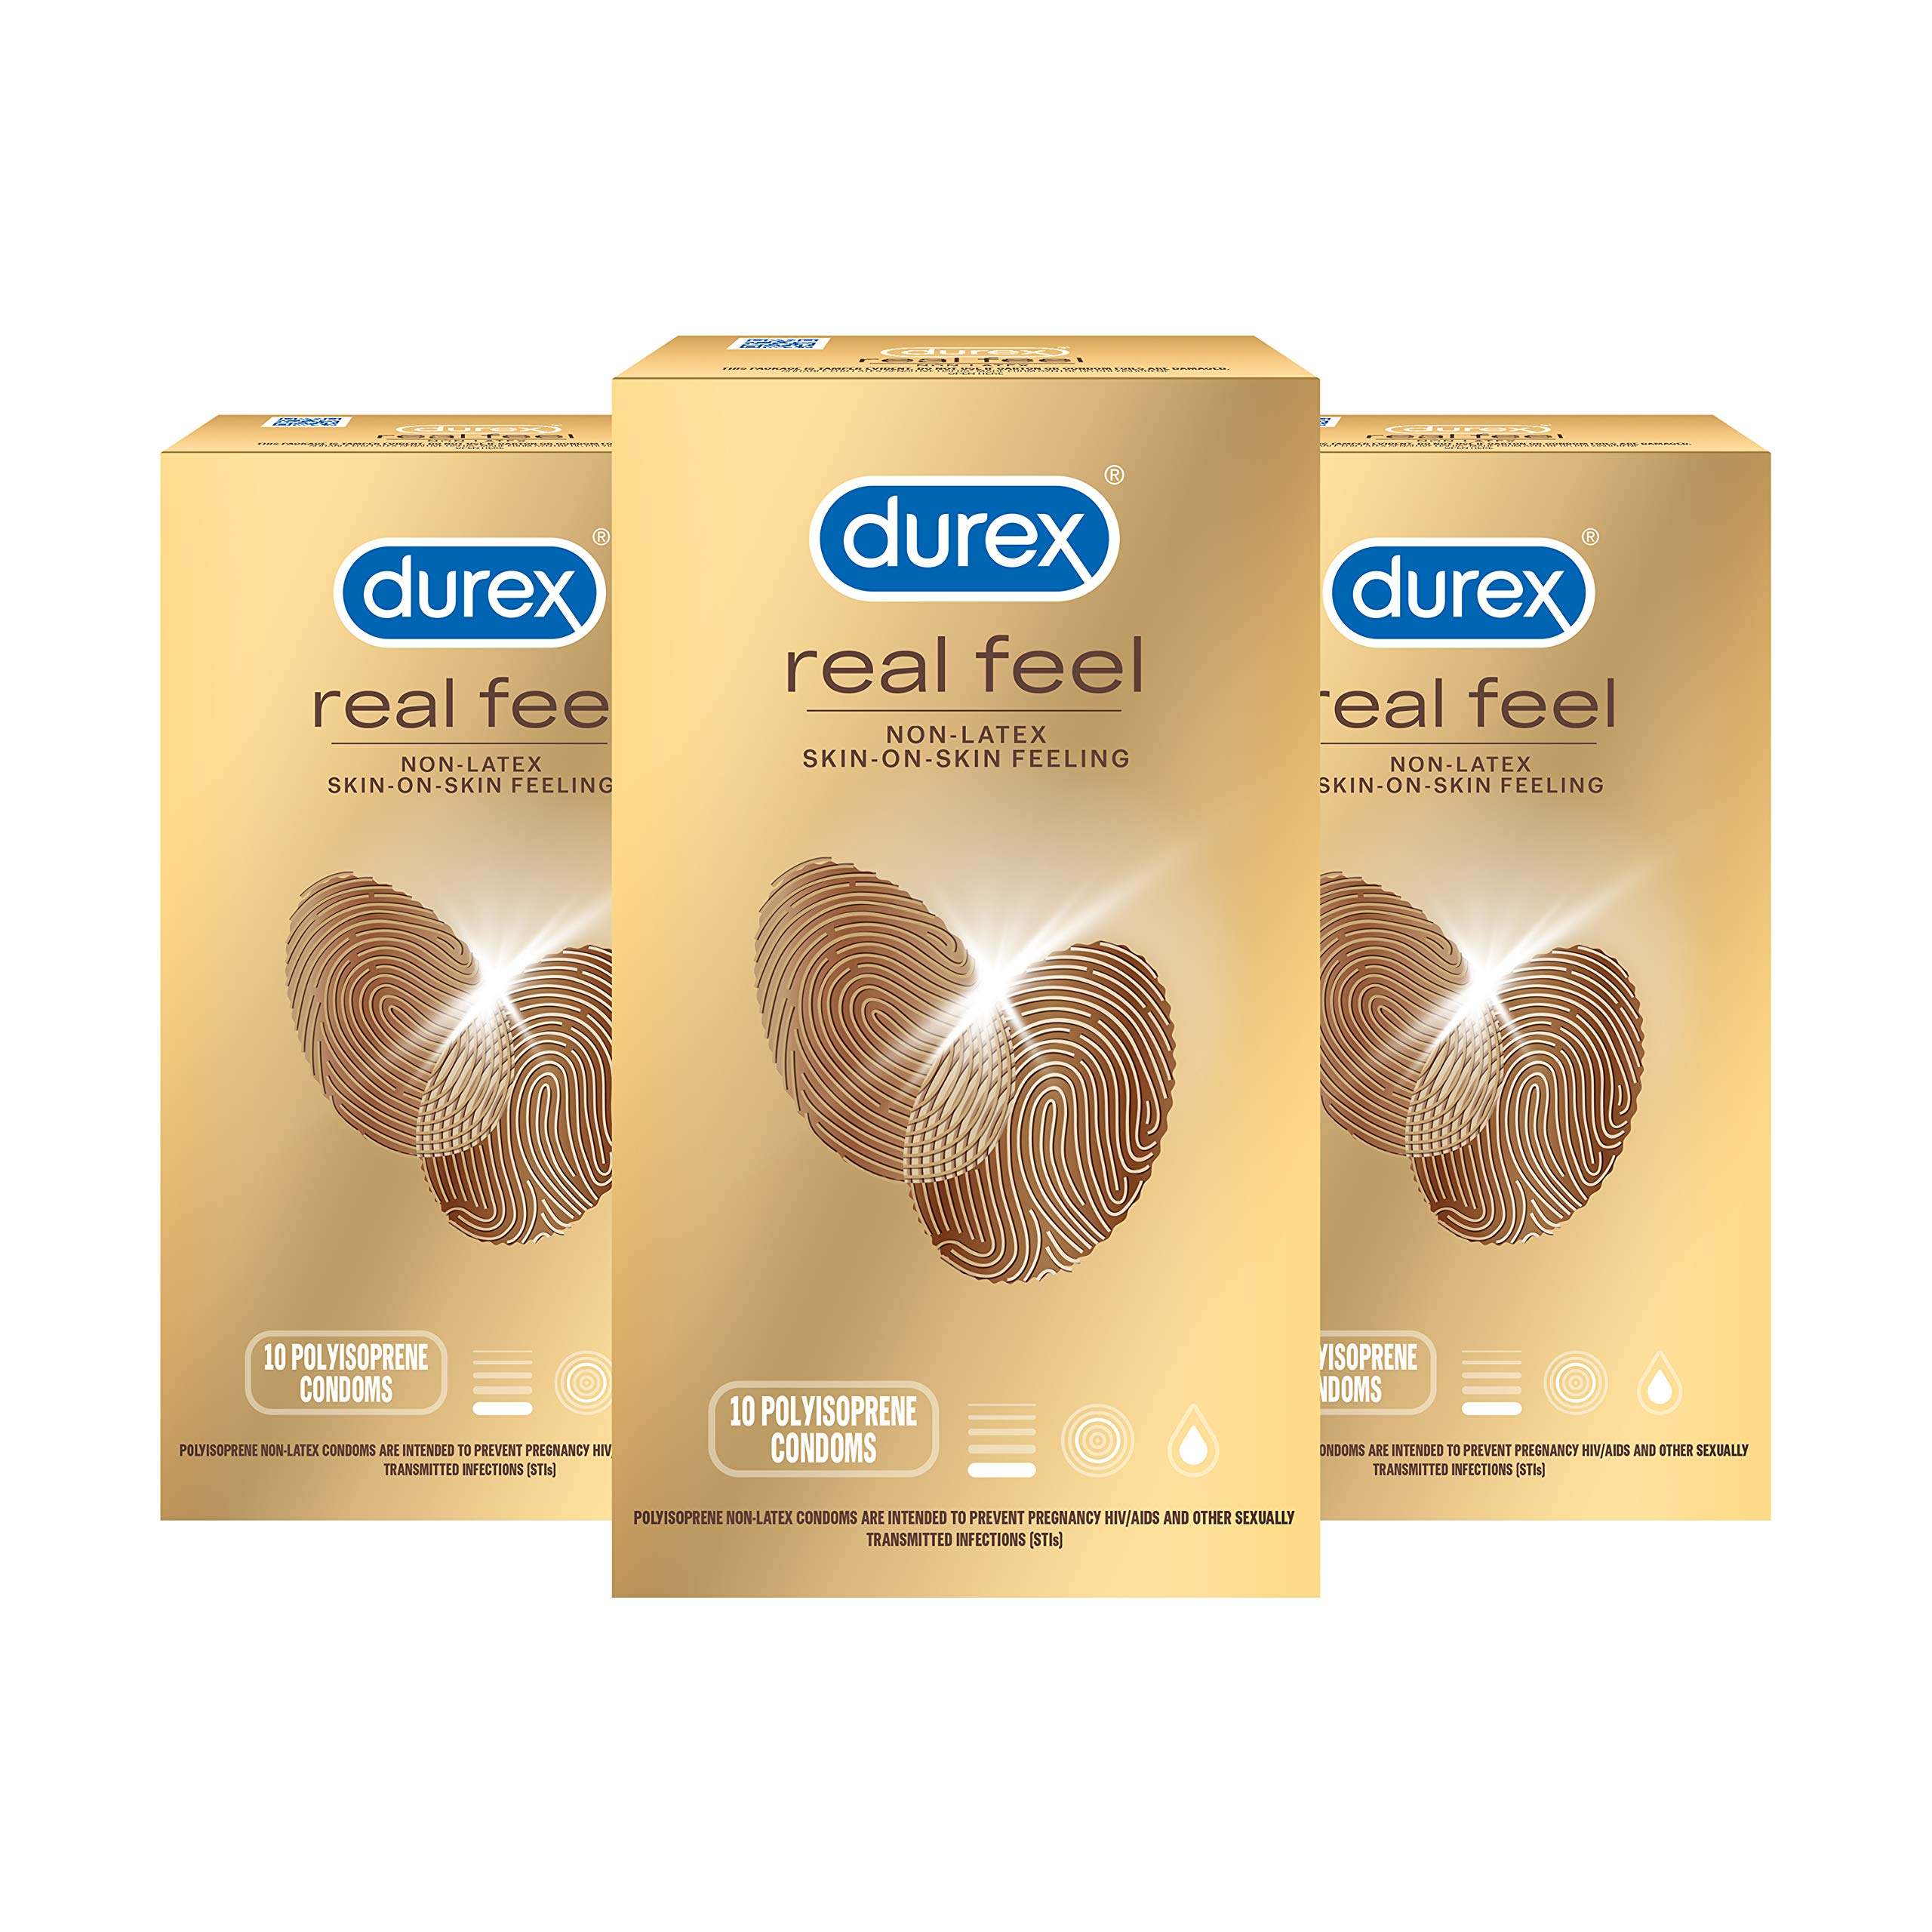 Durex Avanti Bare Real Feel Condoms, Non Latex Lubricated Condoms for Men with Natural Skin on Skin Feeling, FSA & HSA Eligible, 10 Count (Pack of 3)